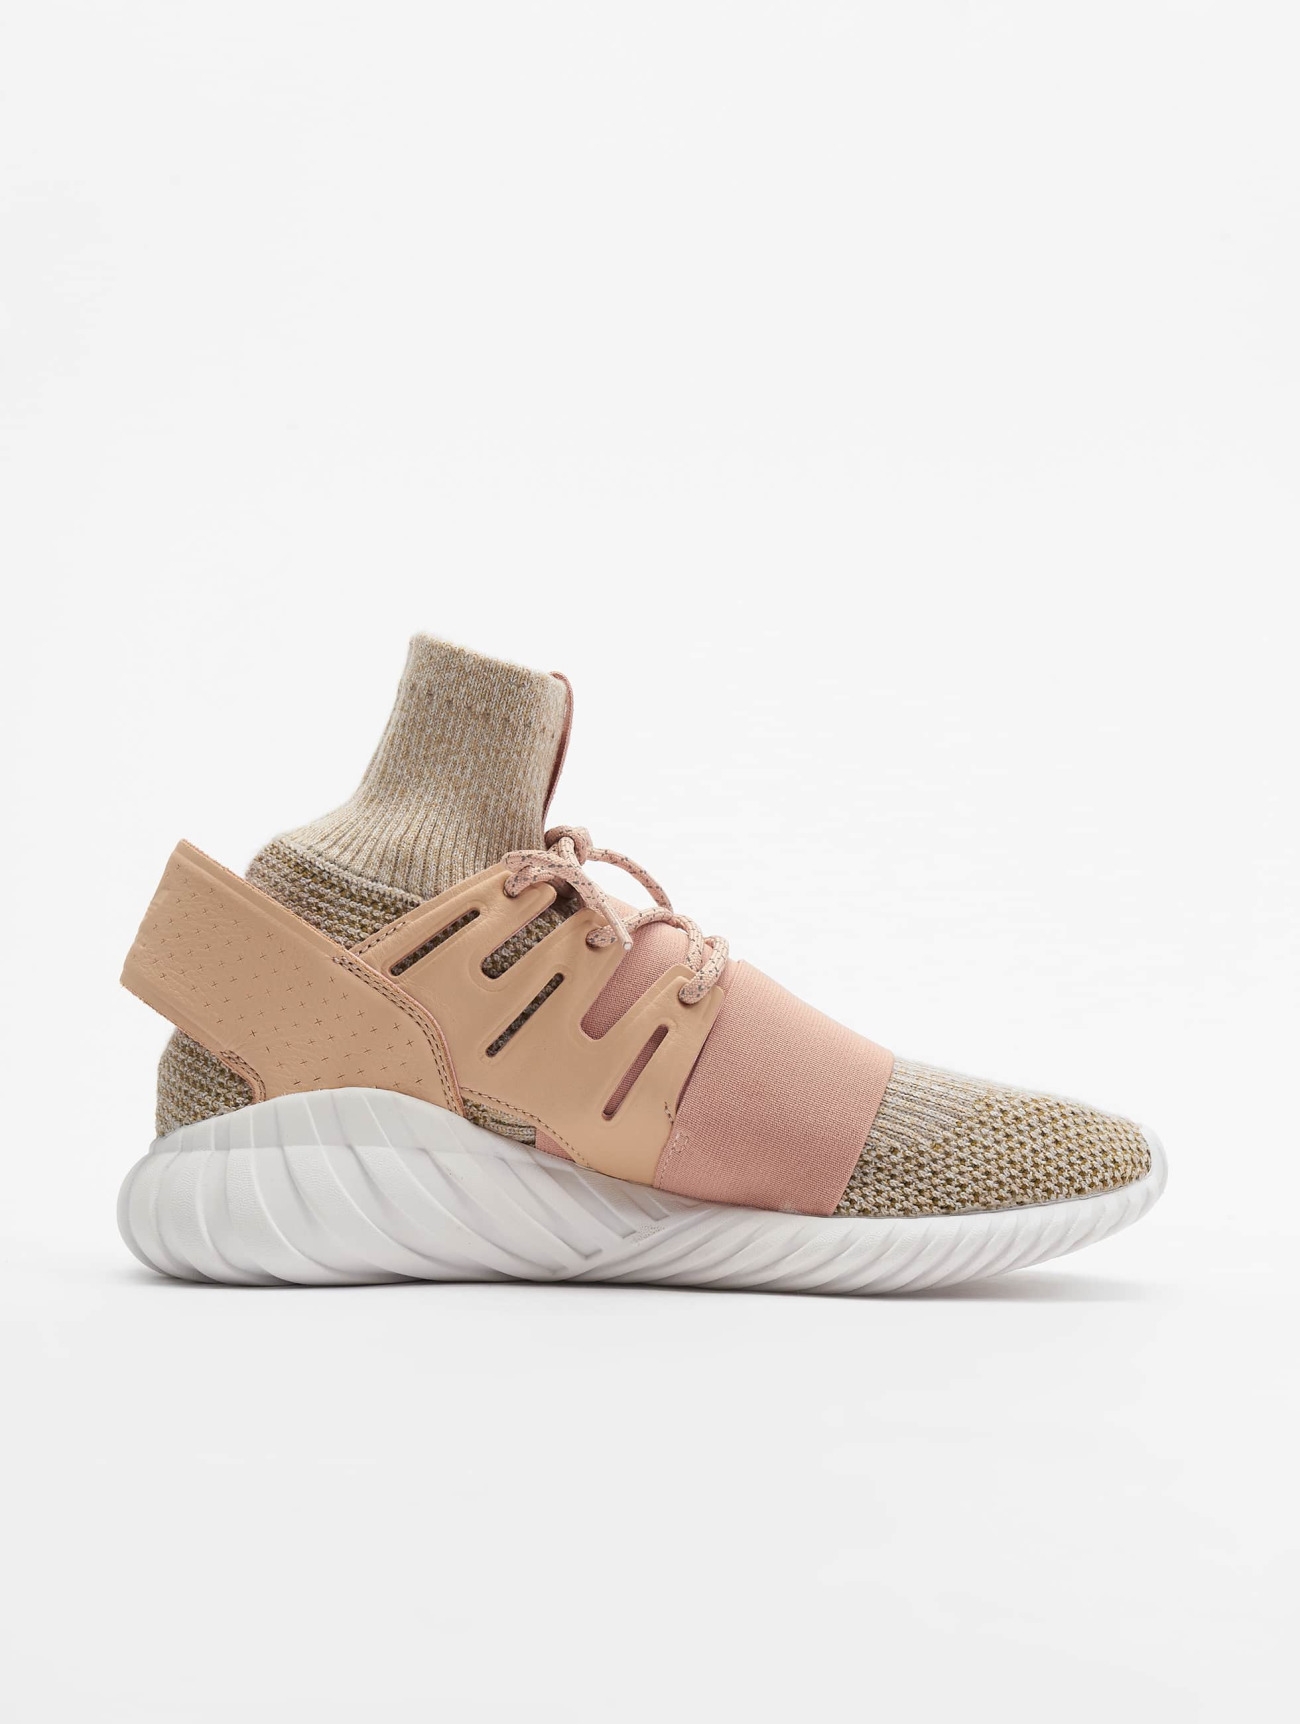 Adidas Tubular Doom PK Sneakers Beige/Rose